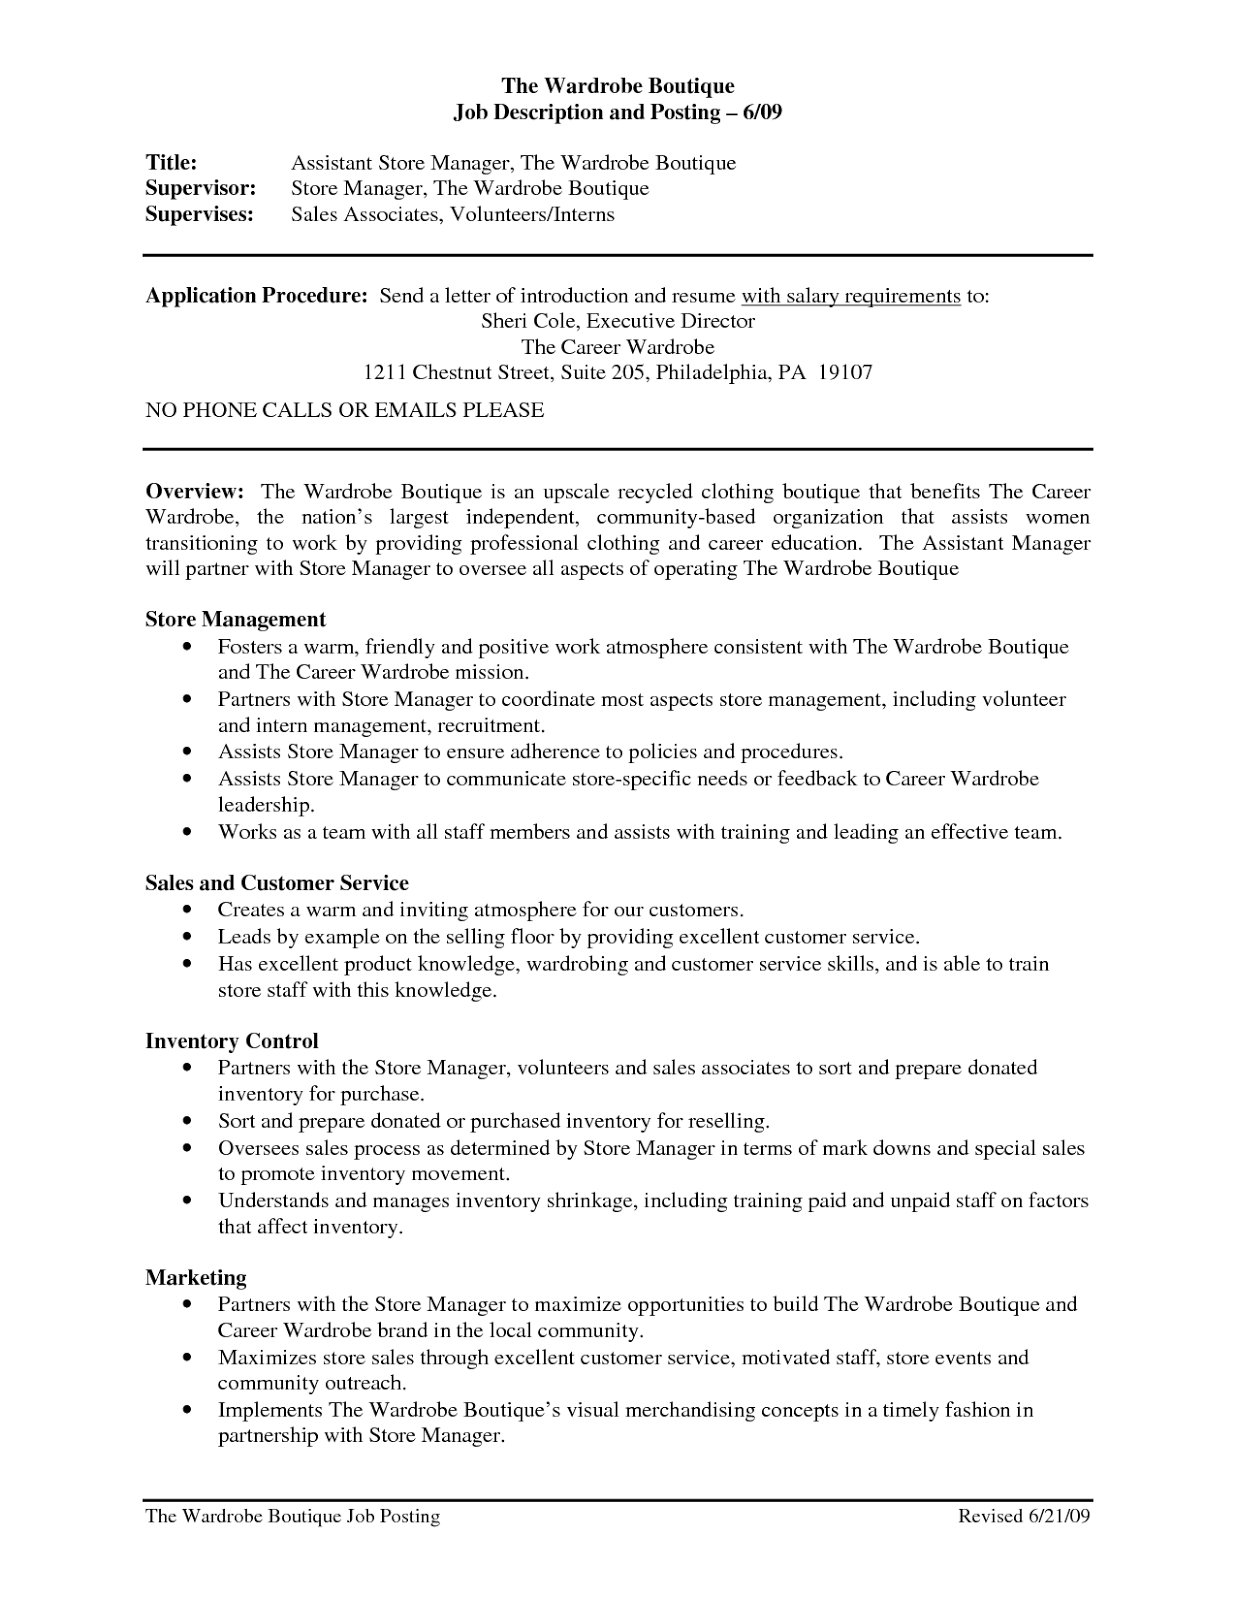 Resume Resume Example For Store Manager In Retail sample resumes retail sales assistant cv template example supervisor resume production duties cover letter